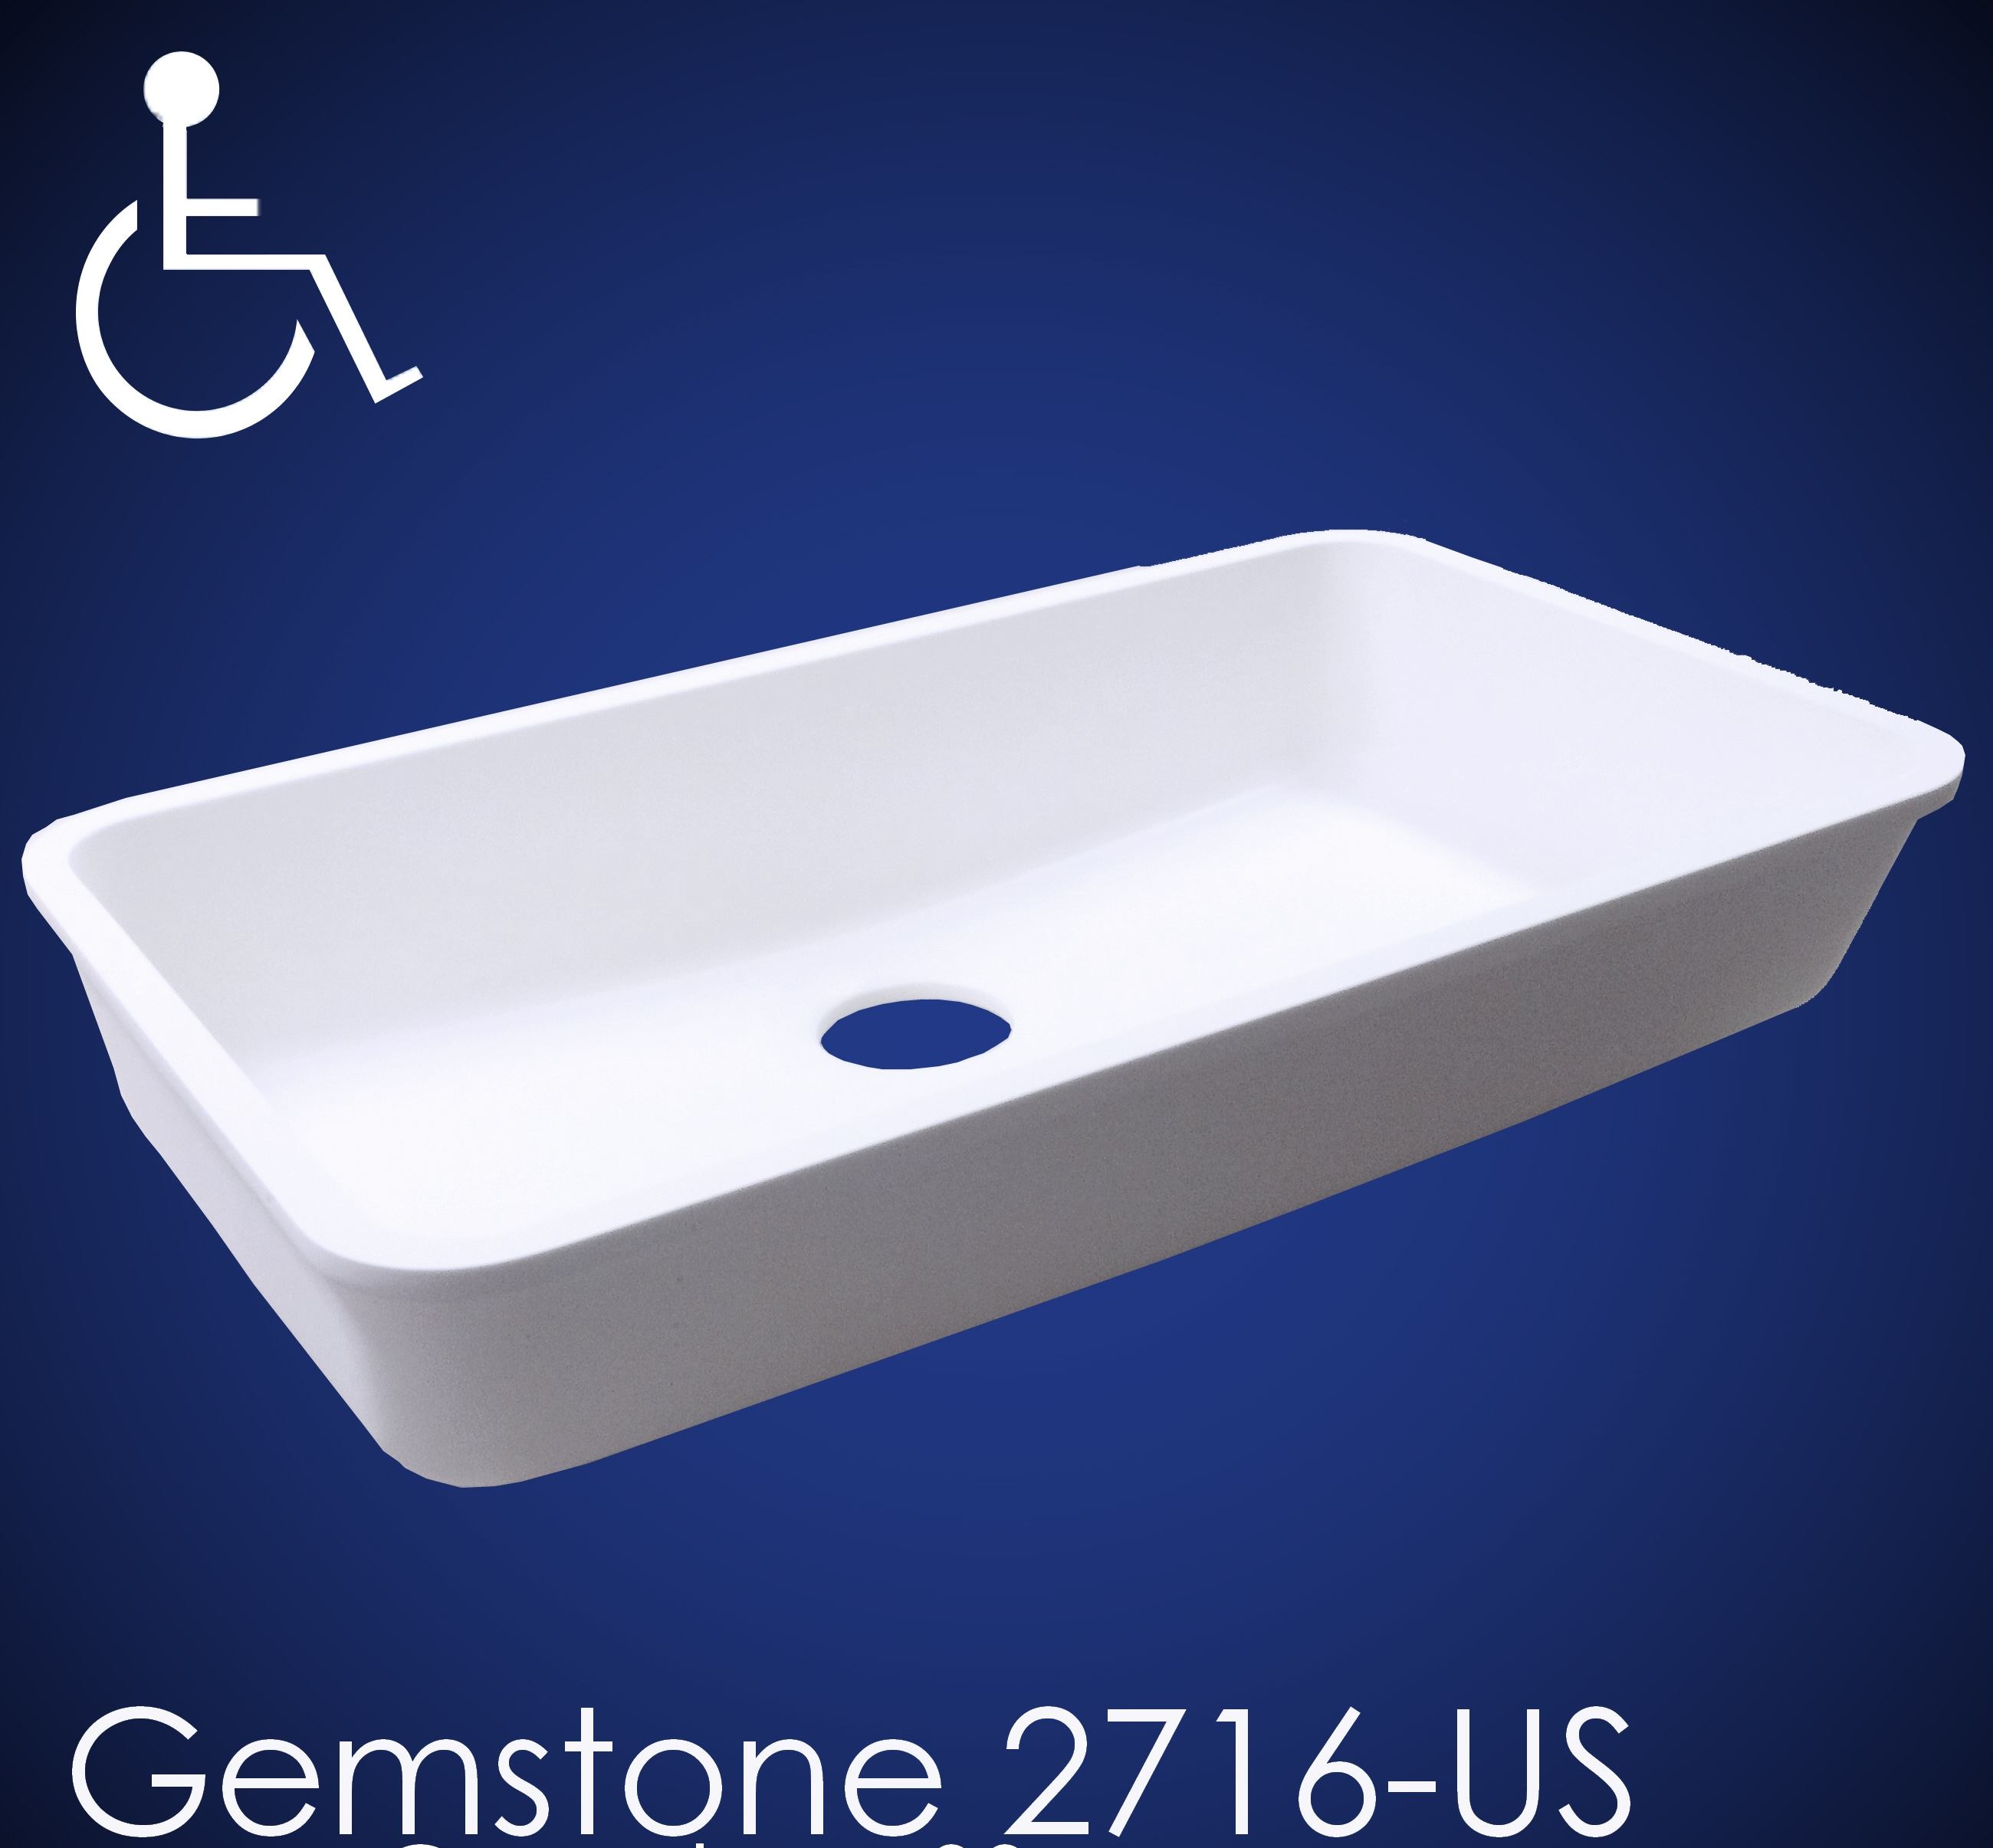 Gemstone Sink : Gemstone Provides New Universal ADA-Compliant Single-Bowl Sink